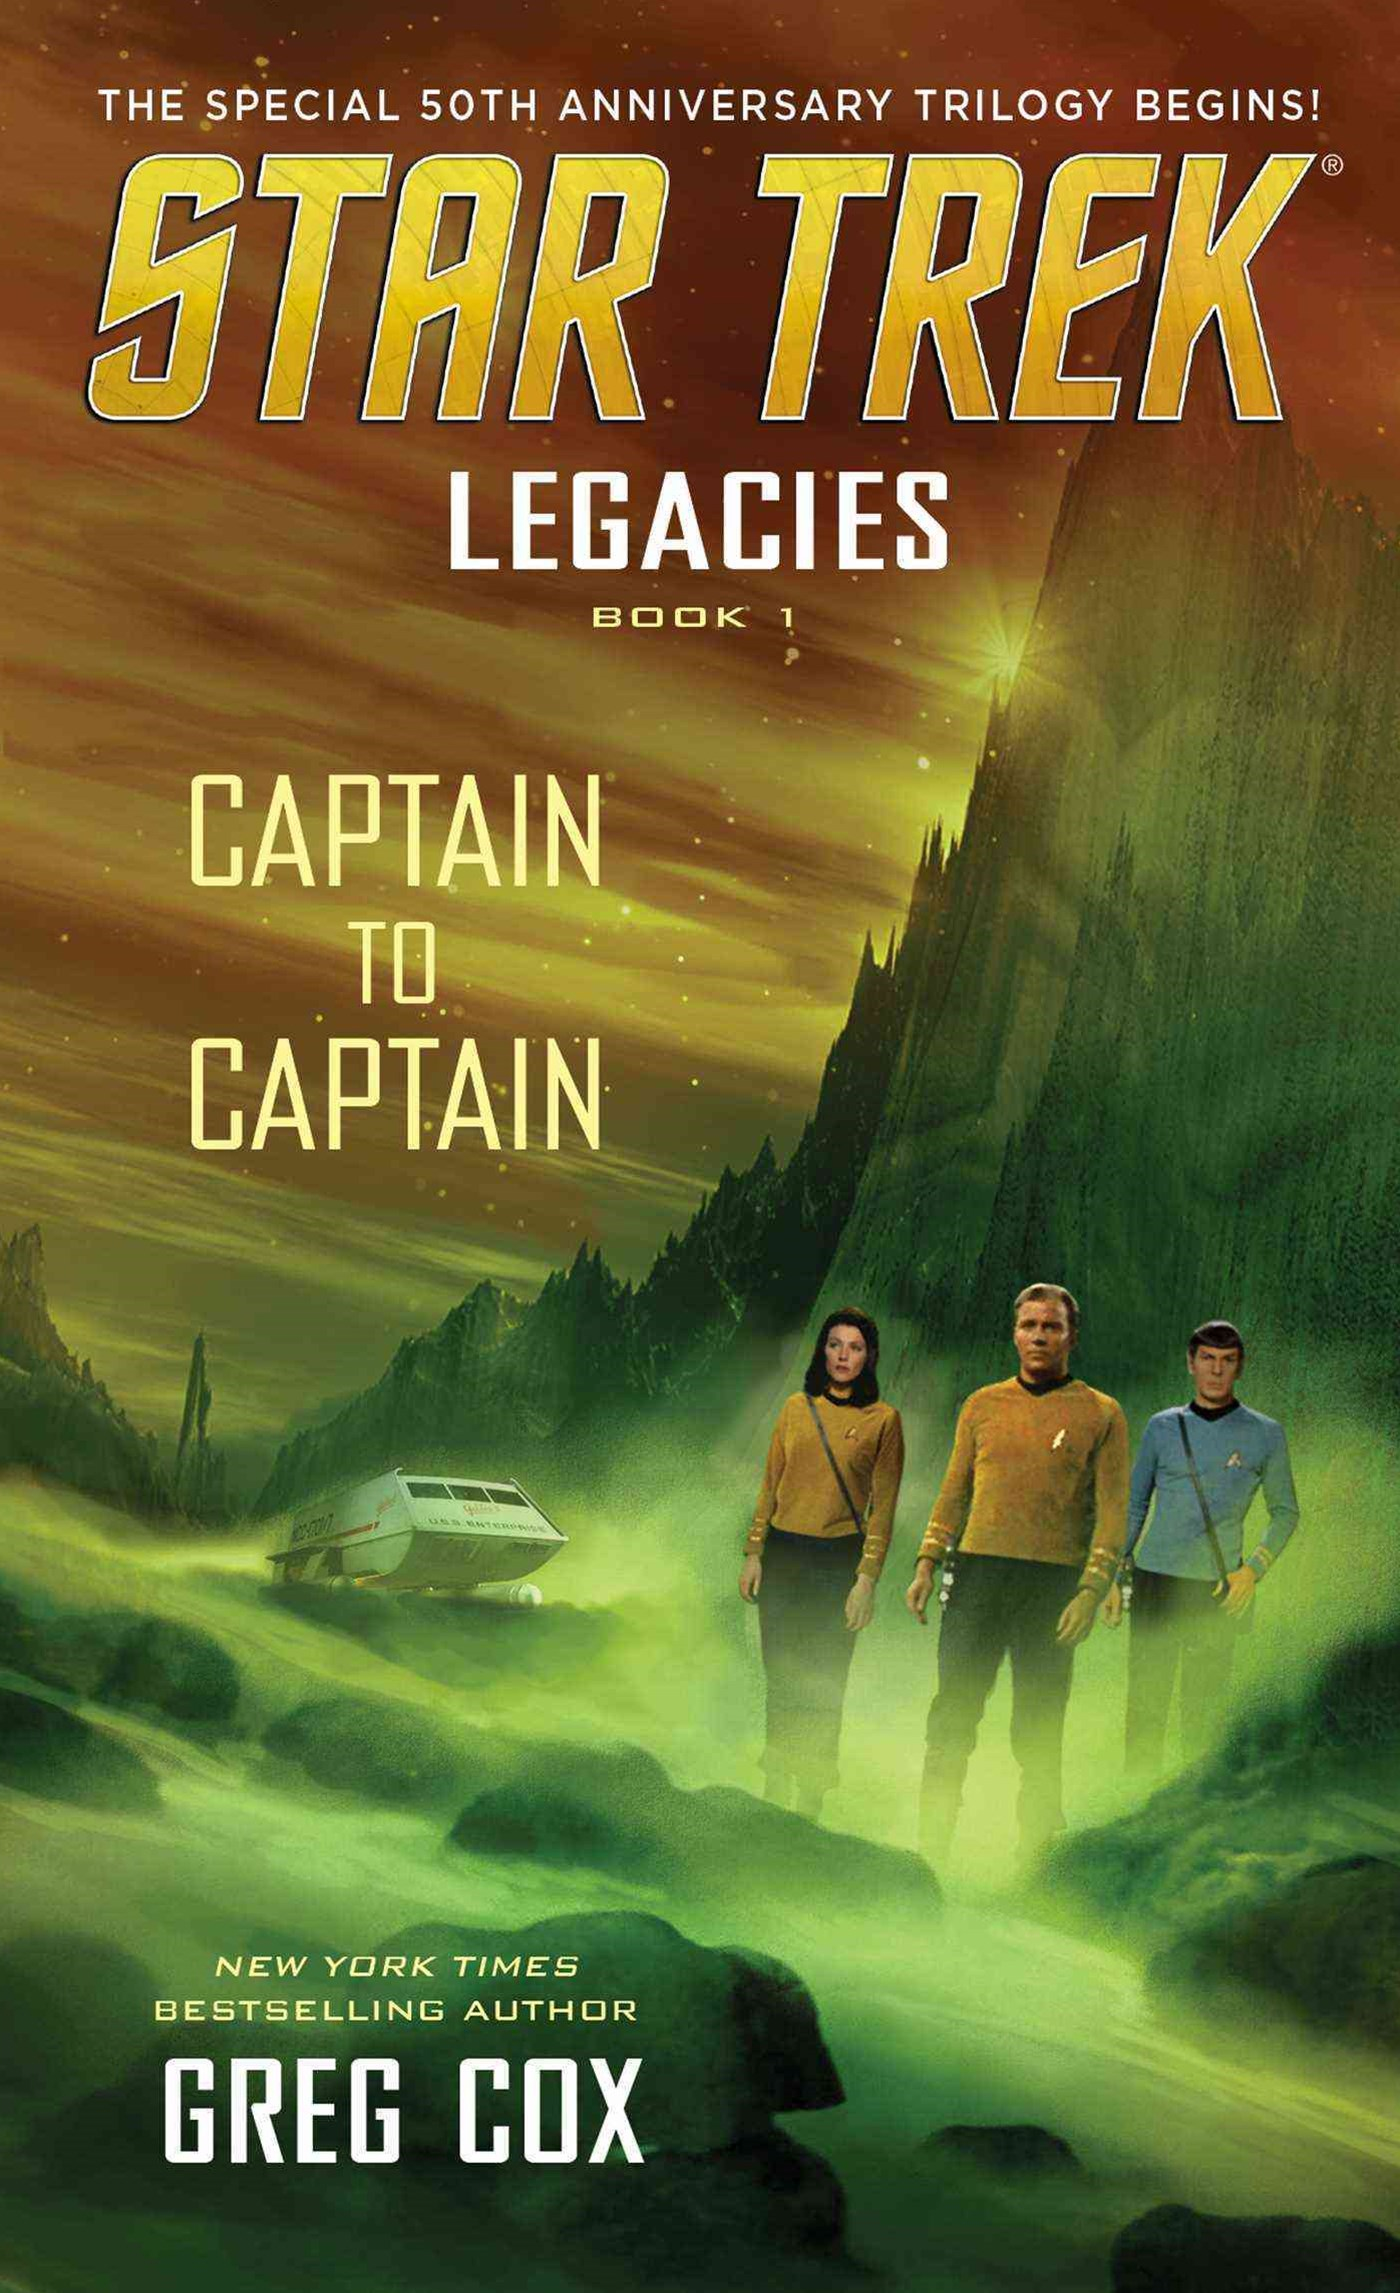 Star Trek: The Original Series: Legacies Book 1: Captain to Captain